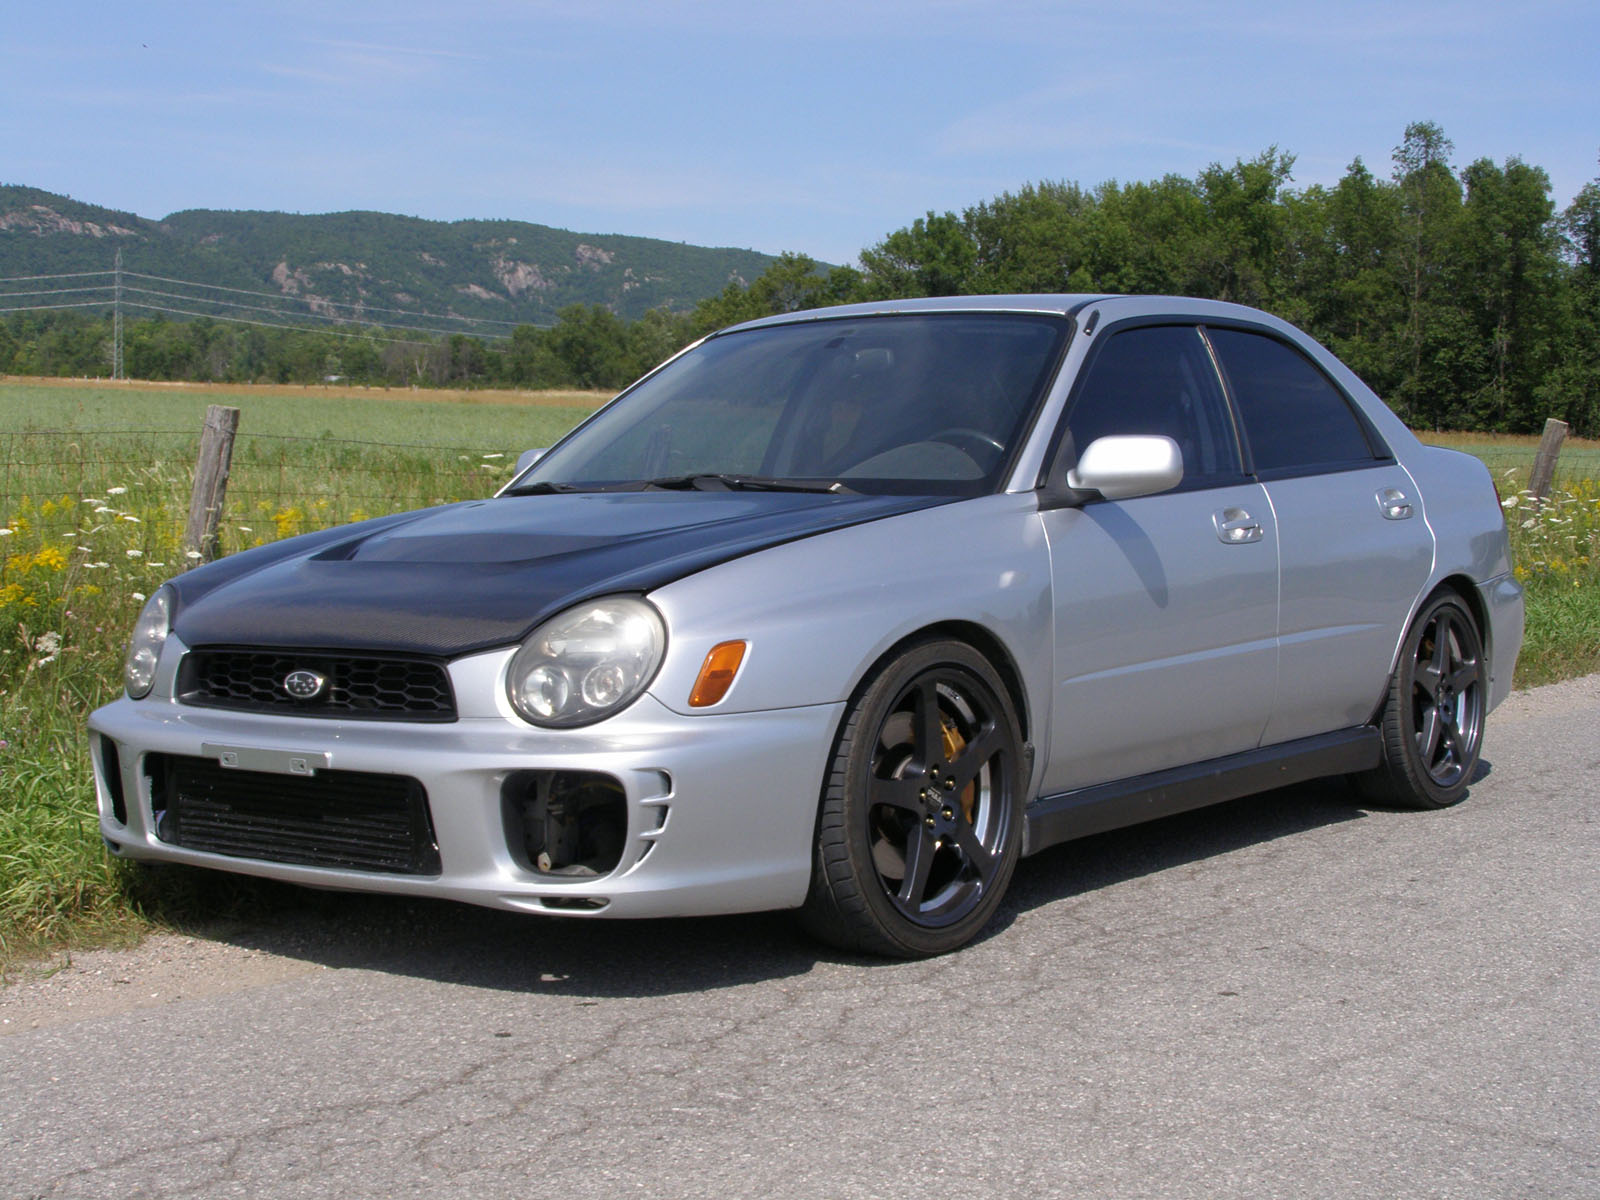 2002 Subaru Impreza STi For Sale | Quebec